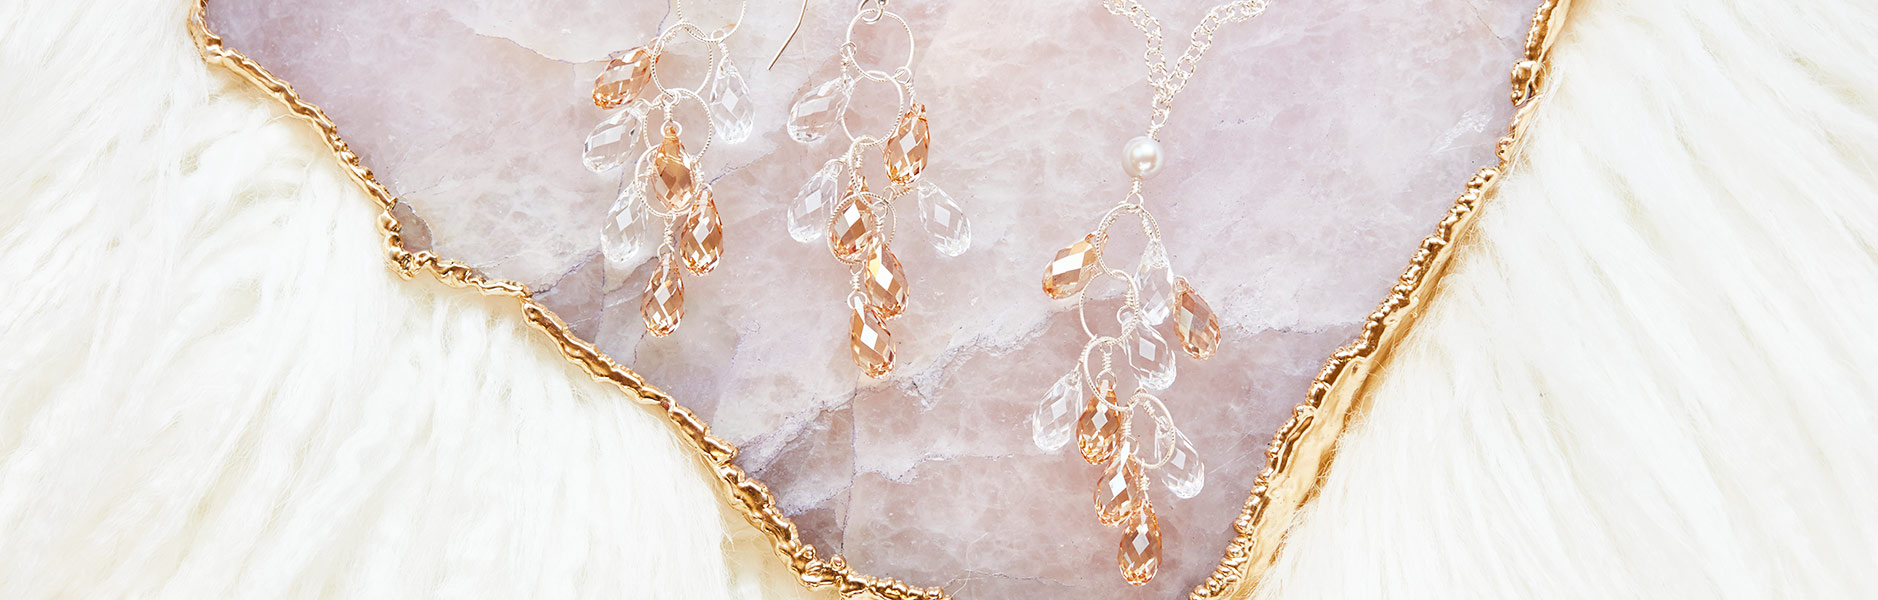 Moonrise Jewelry - Bridal Collection